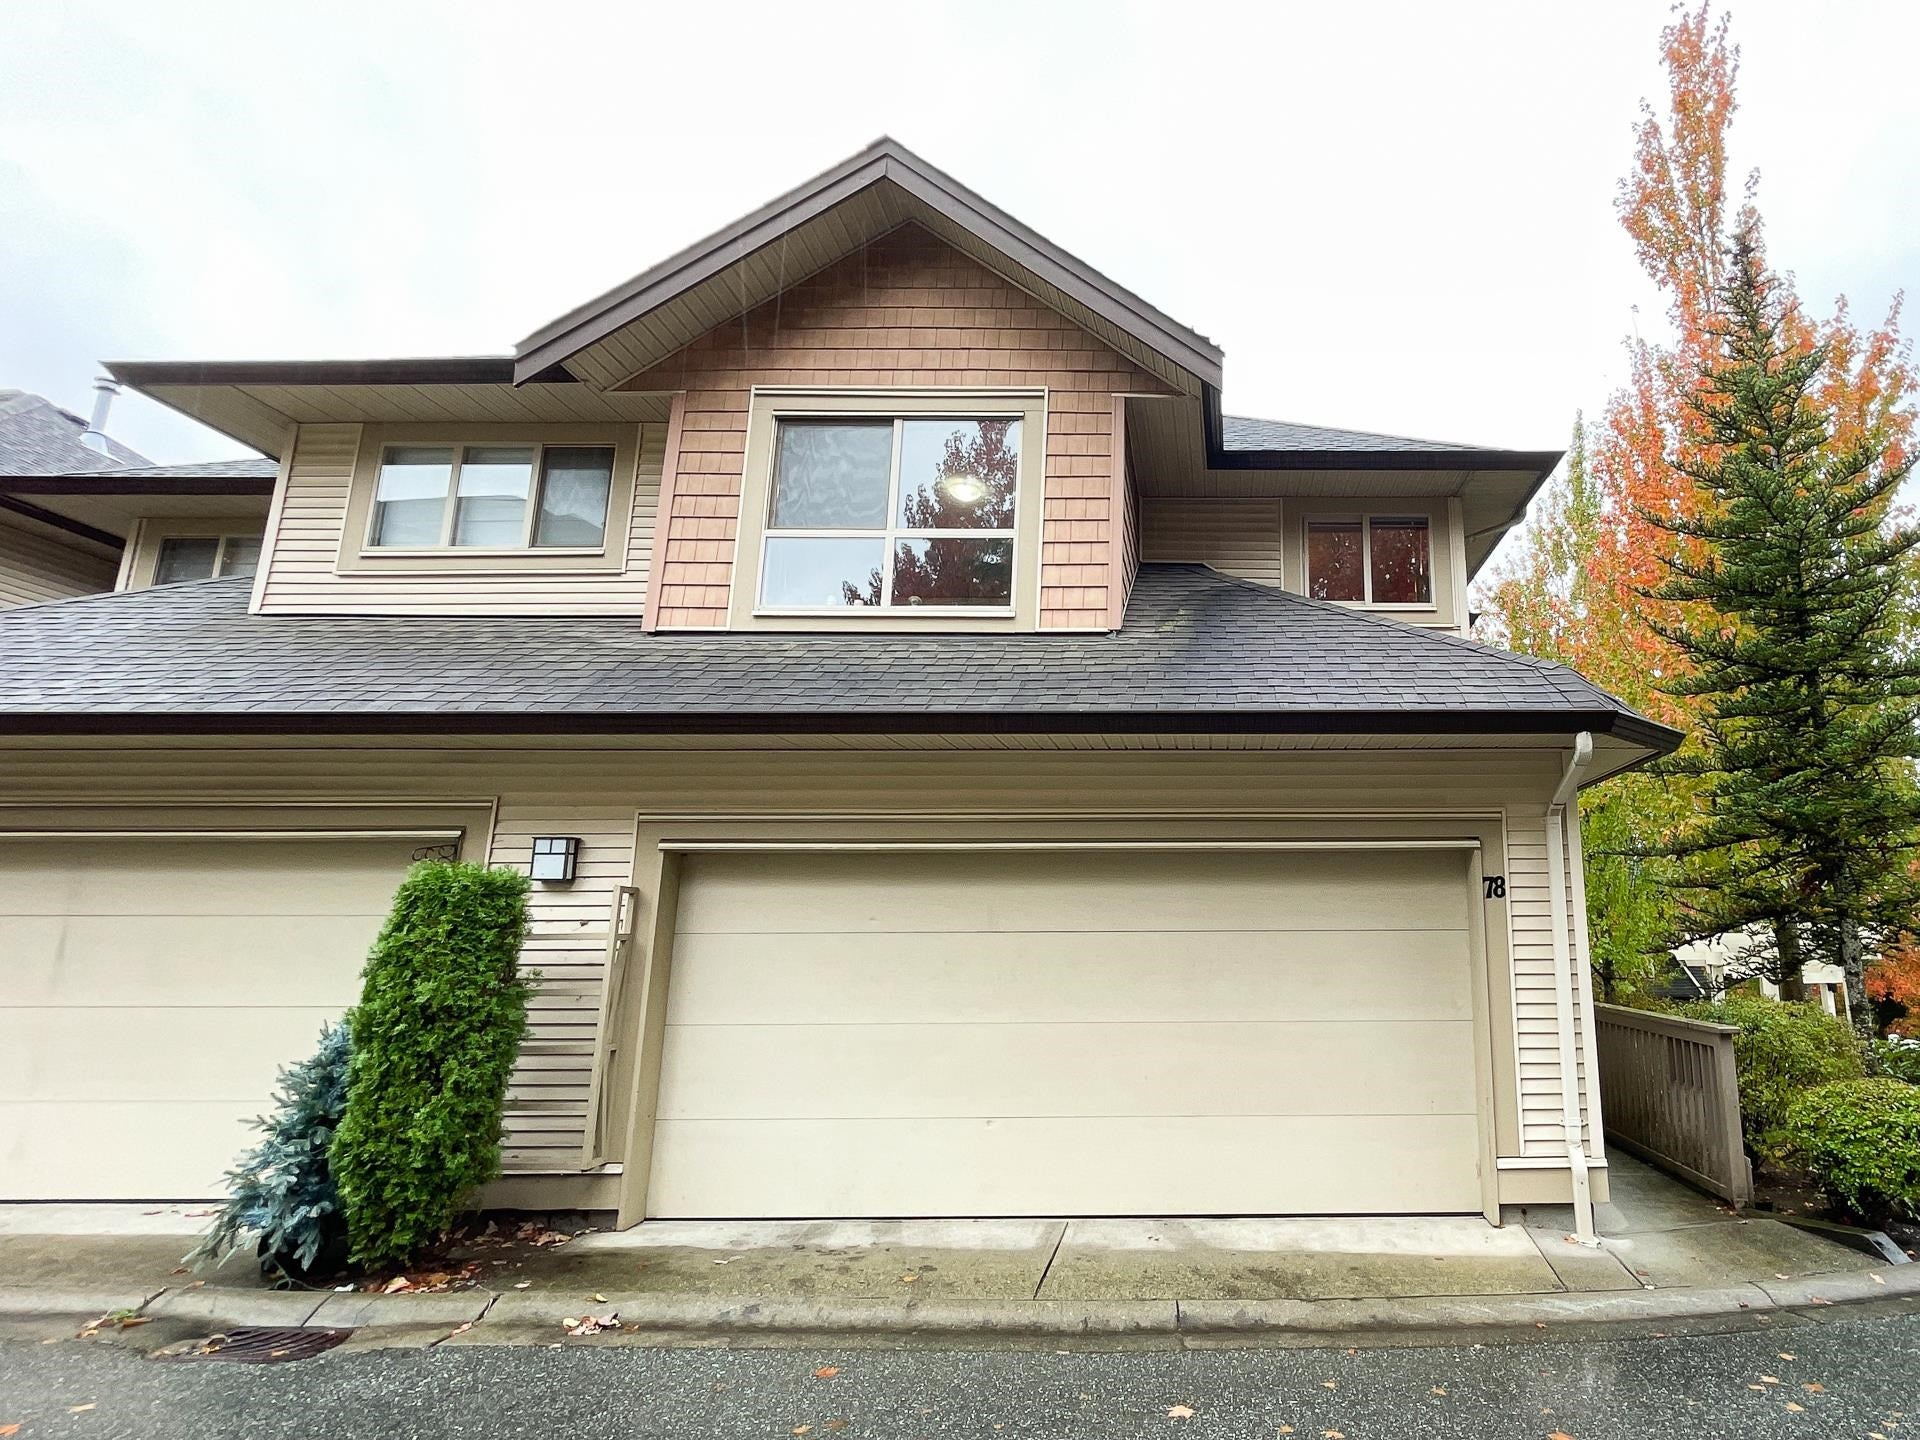 78 20350 68 AVENUE - Willoughby Heights Townhouse for sale, 3 Bedrooms (R2626338) - #1